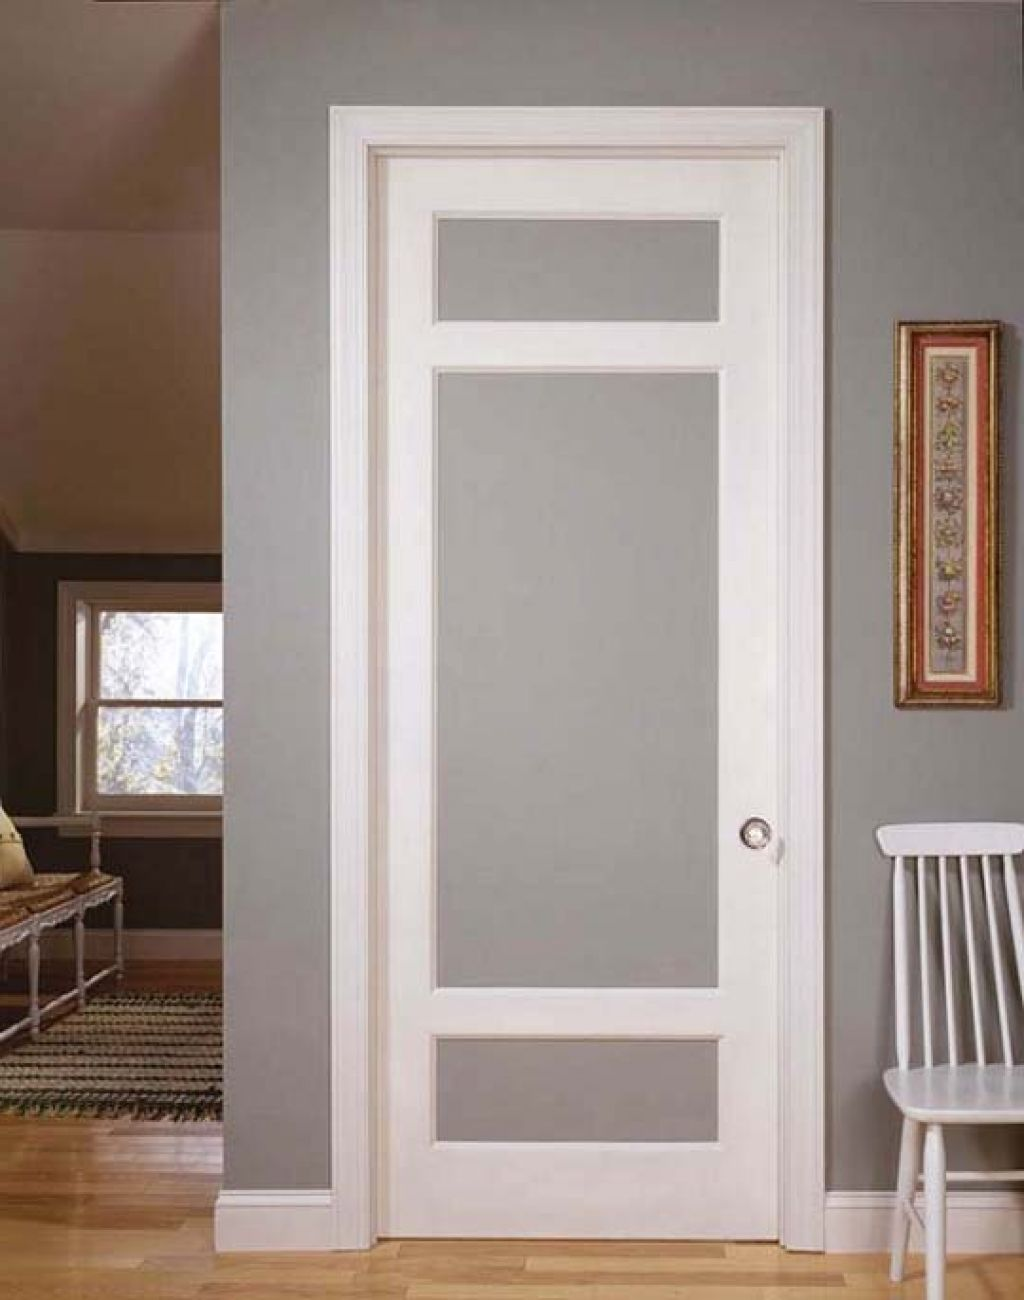 Le Meilleur French Doors Interior Frosted Glass An Ideal Material Ce Mois Ci